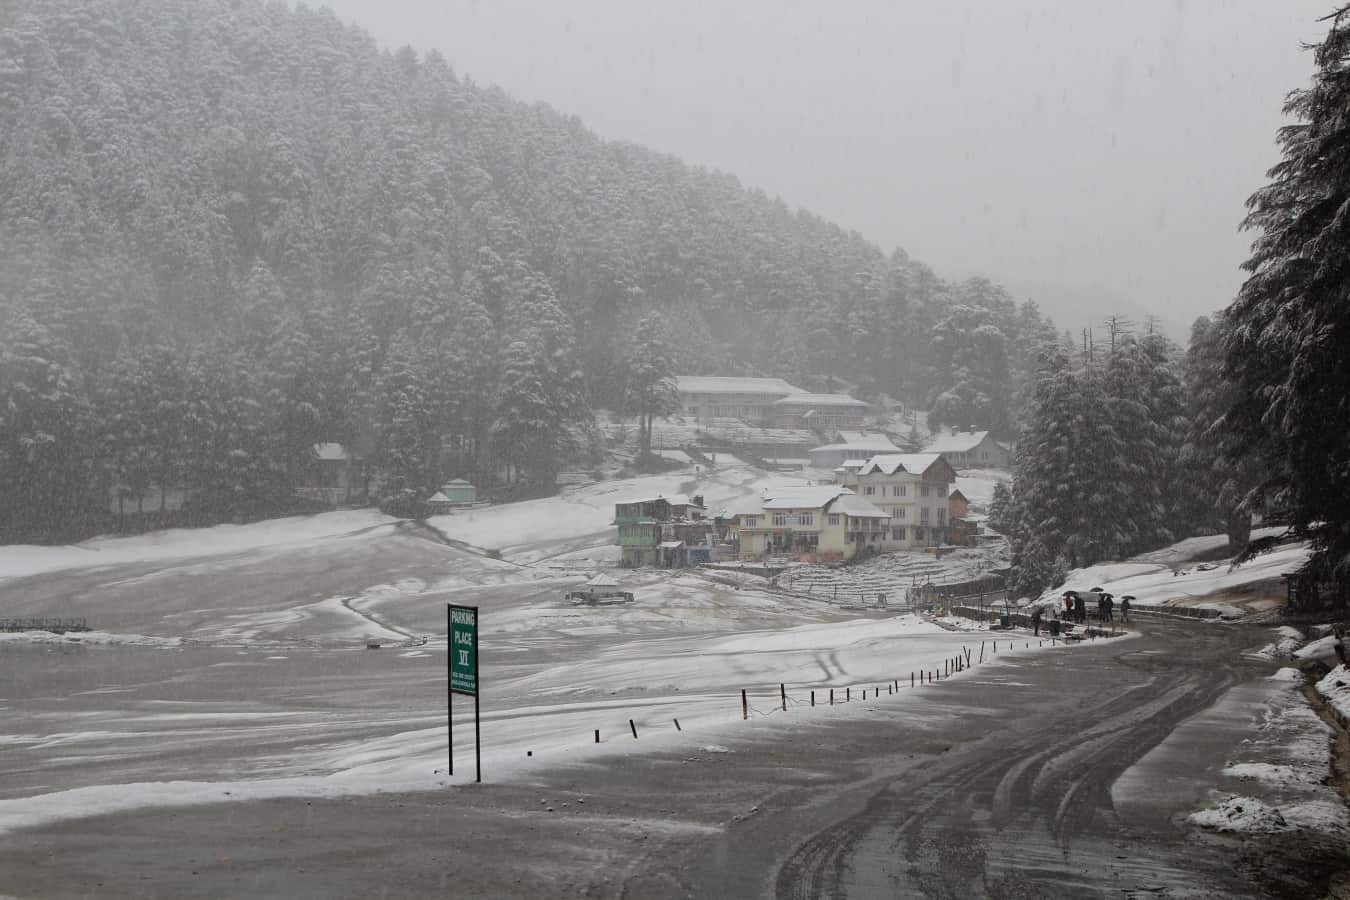 Khajjiar, a place to enjoy Snowfall near Delhi